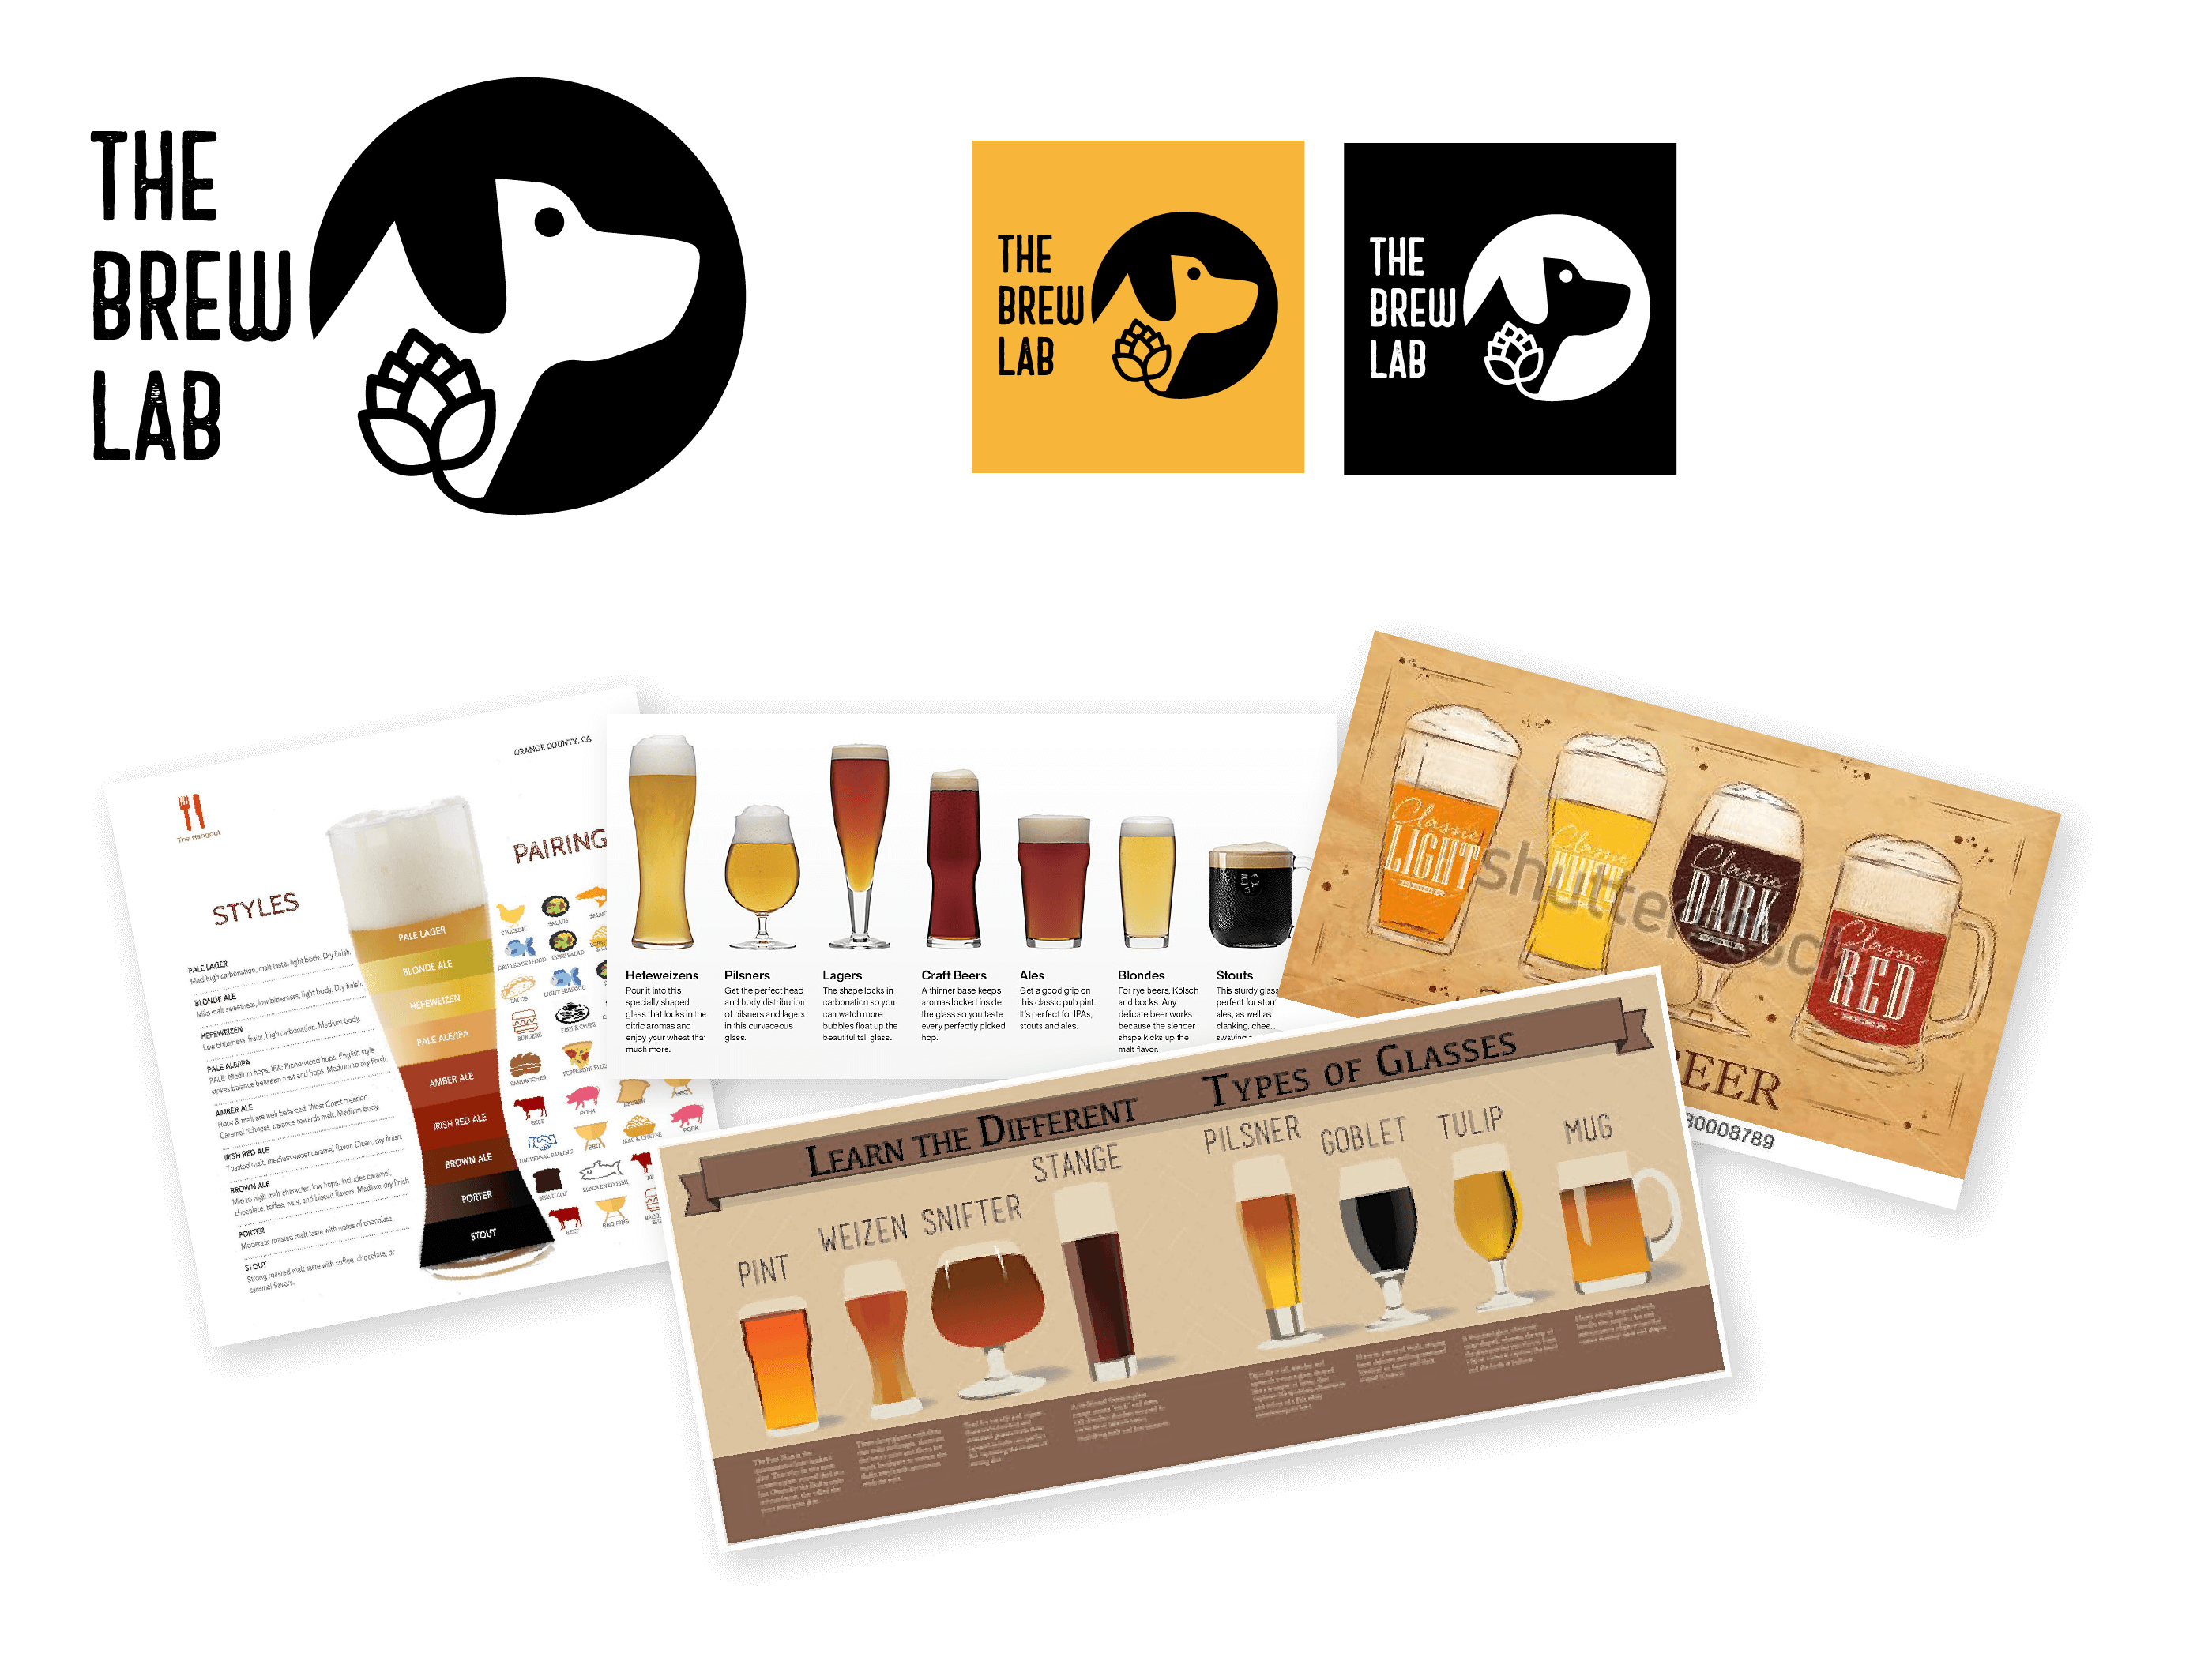 The Brew Lab logo black on white background, black on yellow background and white with black background. Below is a collage of types of beer used as design inspiration.